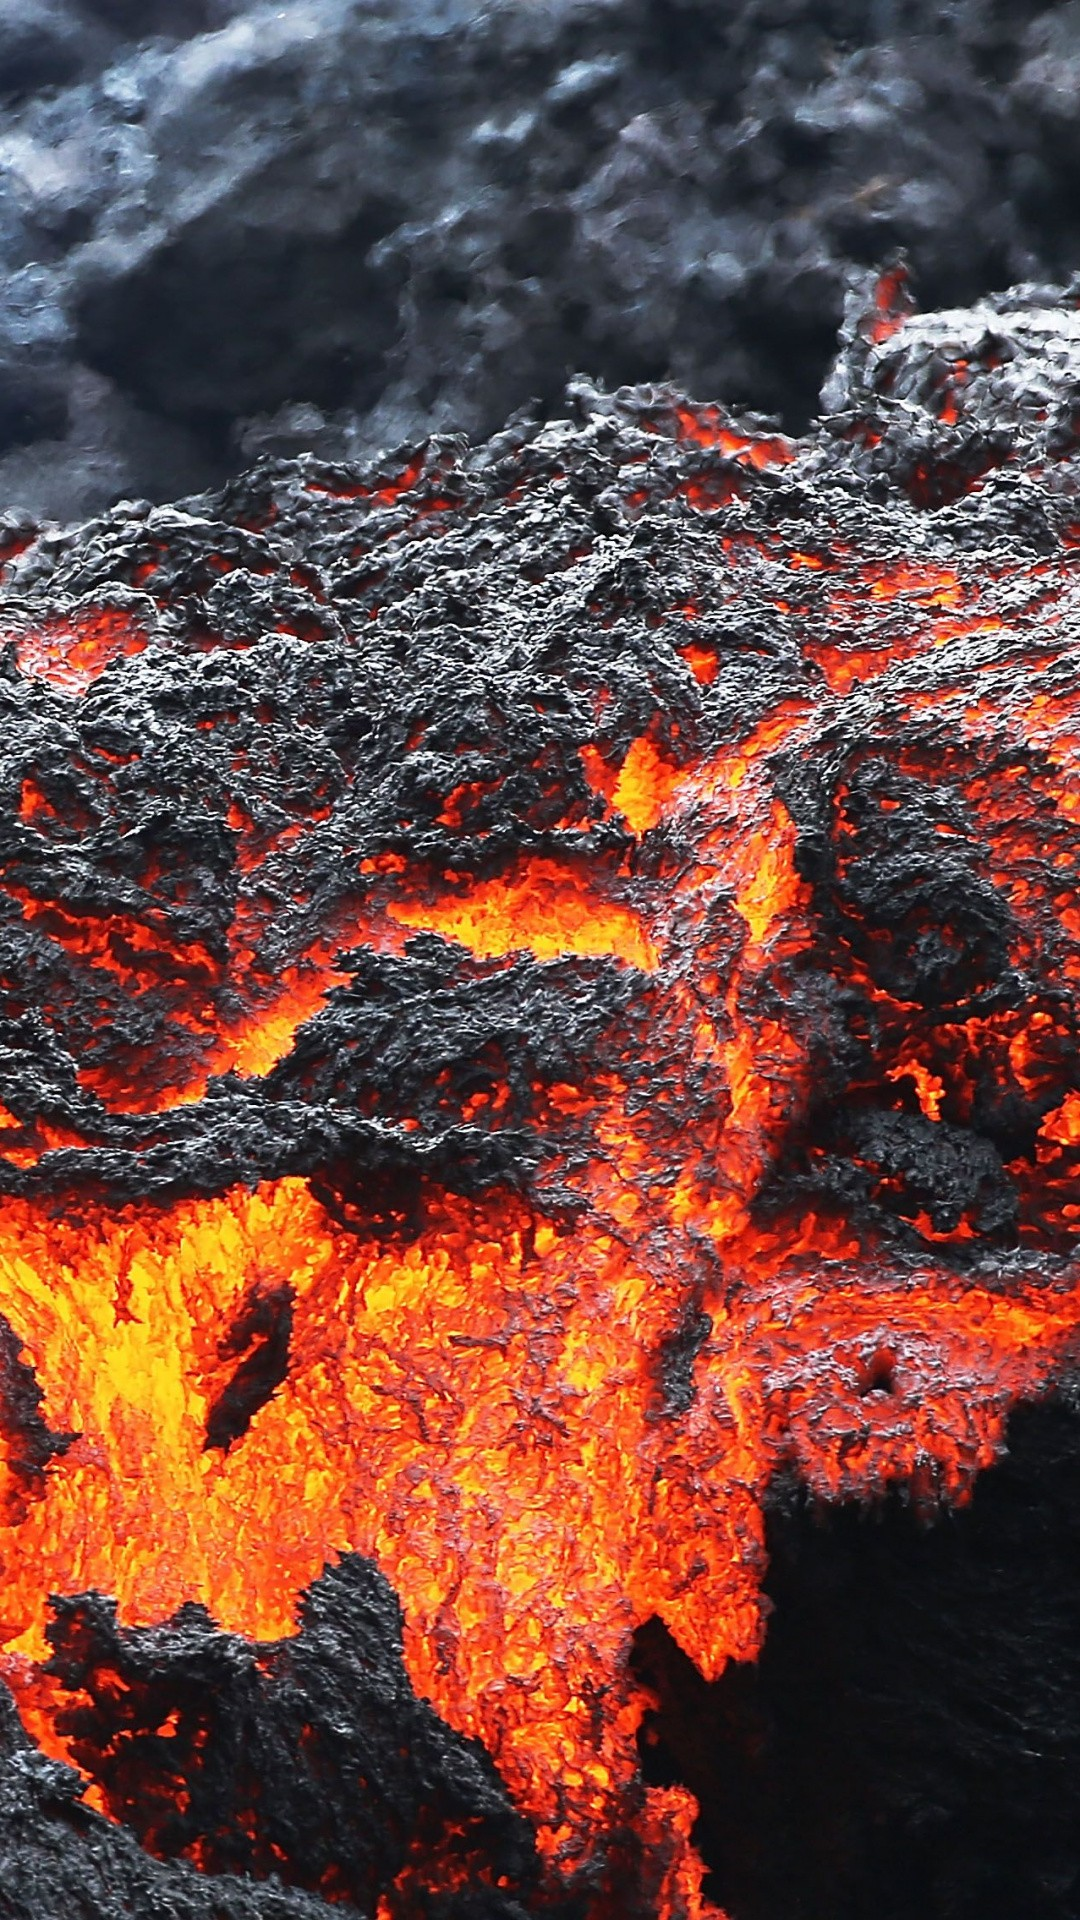 Geological Phenomenon Rock Water Red Lava Geology Volcano Latest News Hawaii 2983385 Hd Wallpaper Backgrounds Download